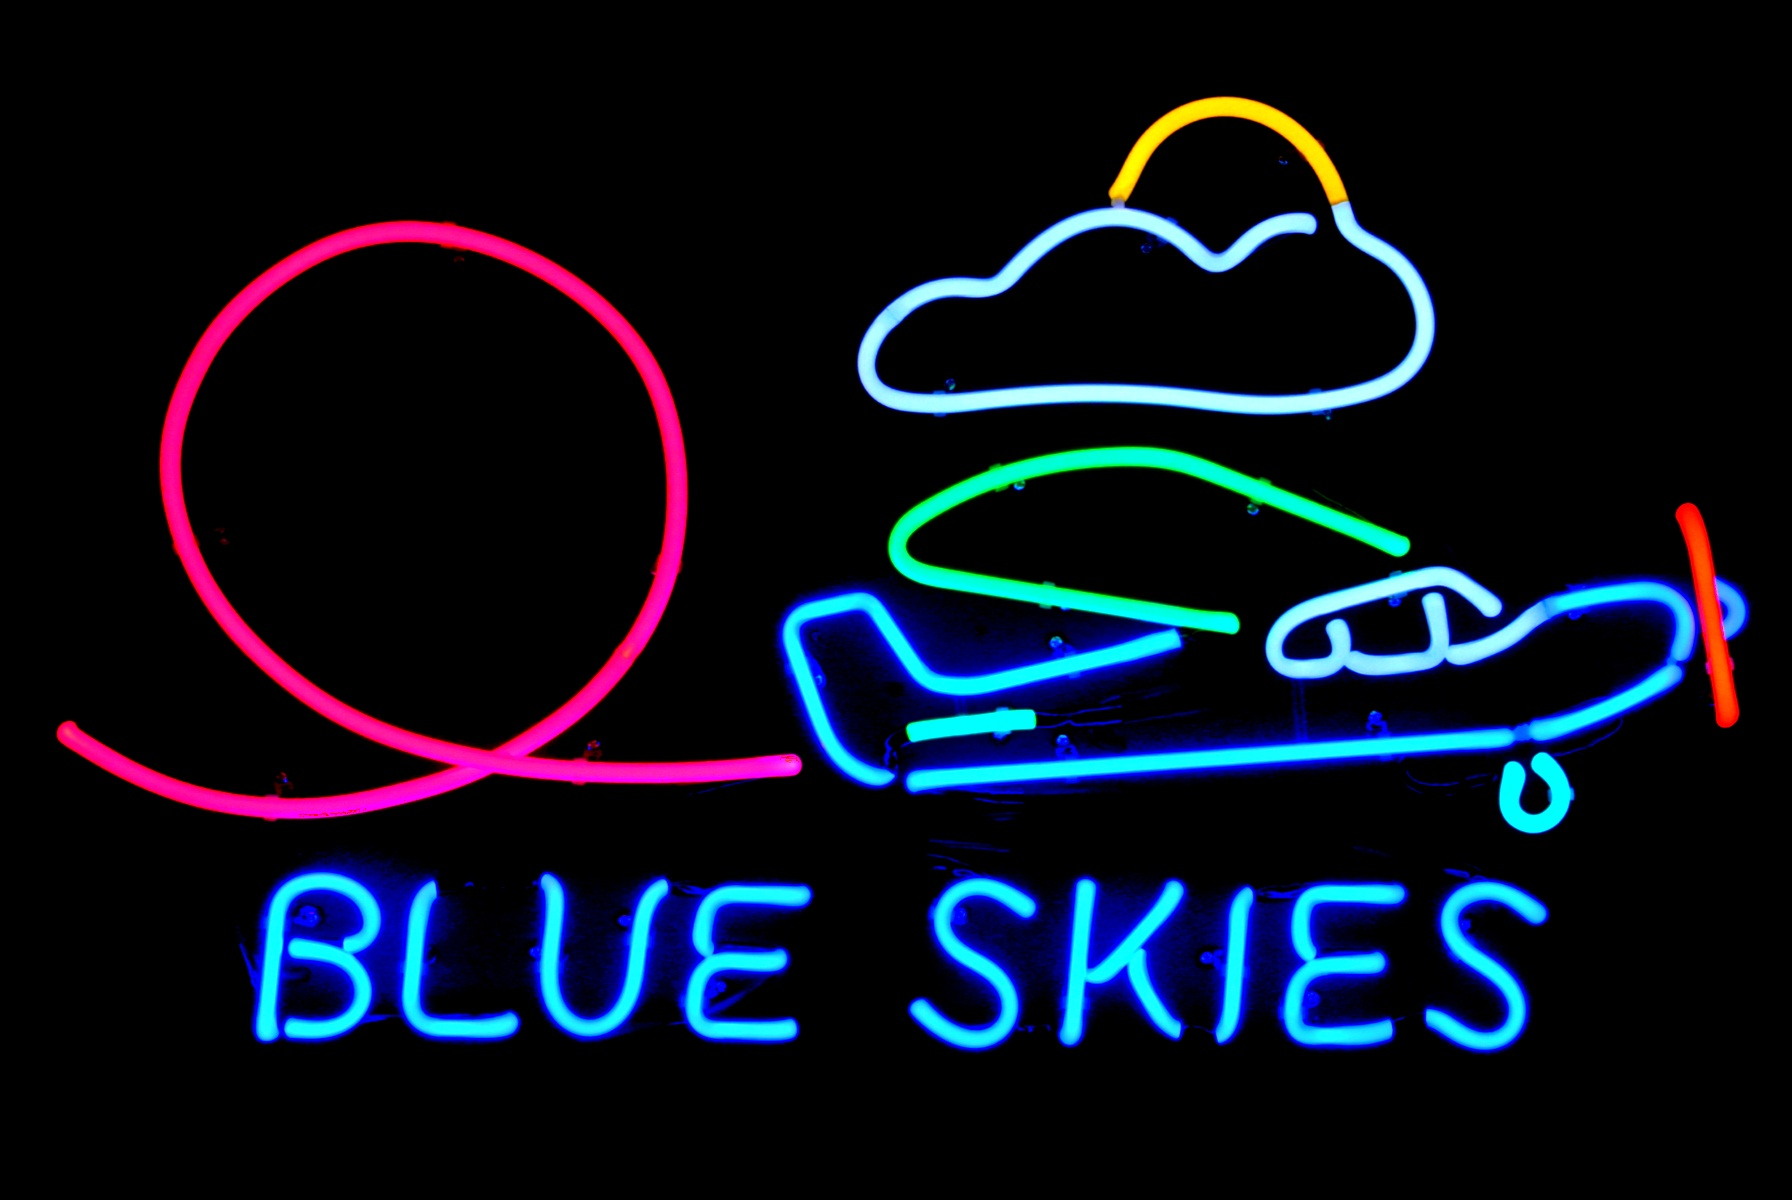 BLUE SKIES STUNT AIRPLANE NEON LIGHT ART by John Barton - BartonNeonMagic.com